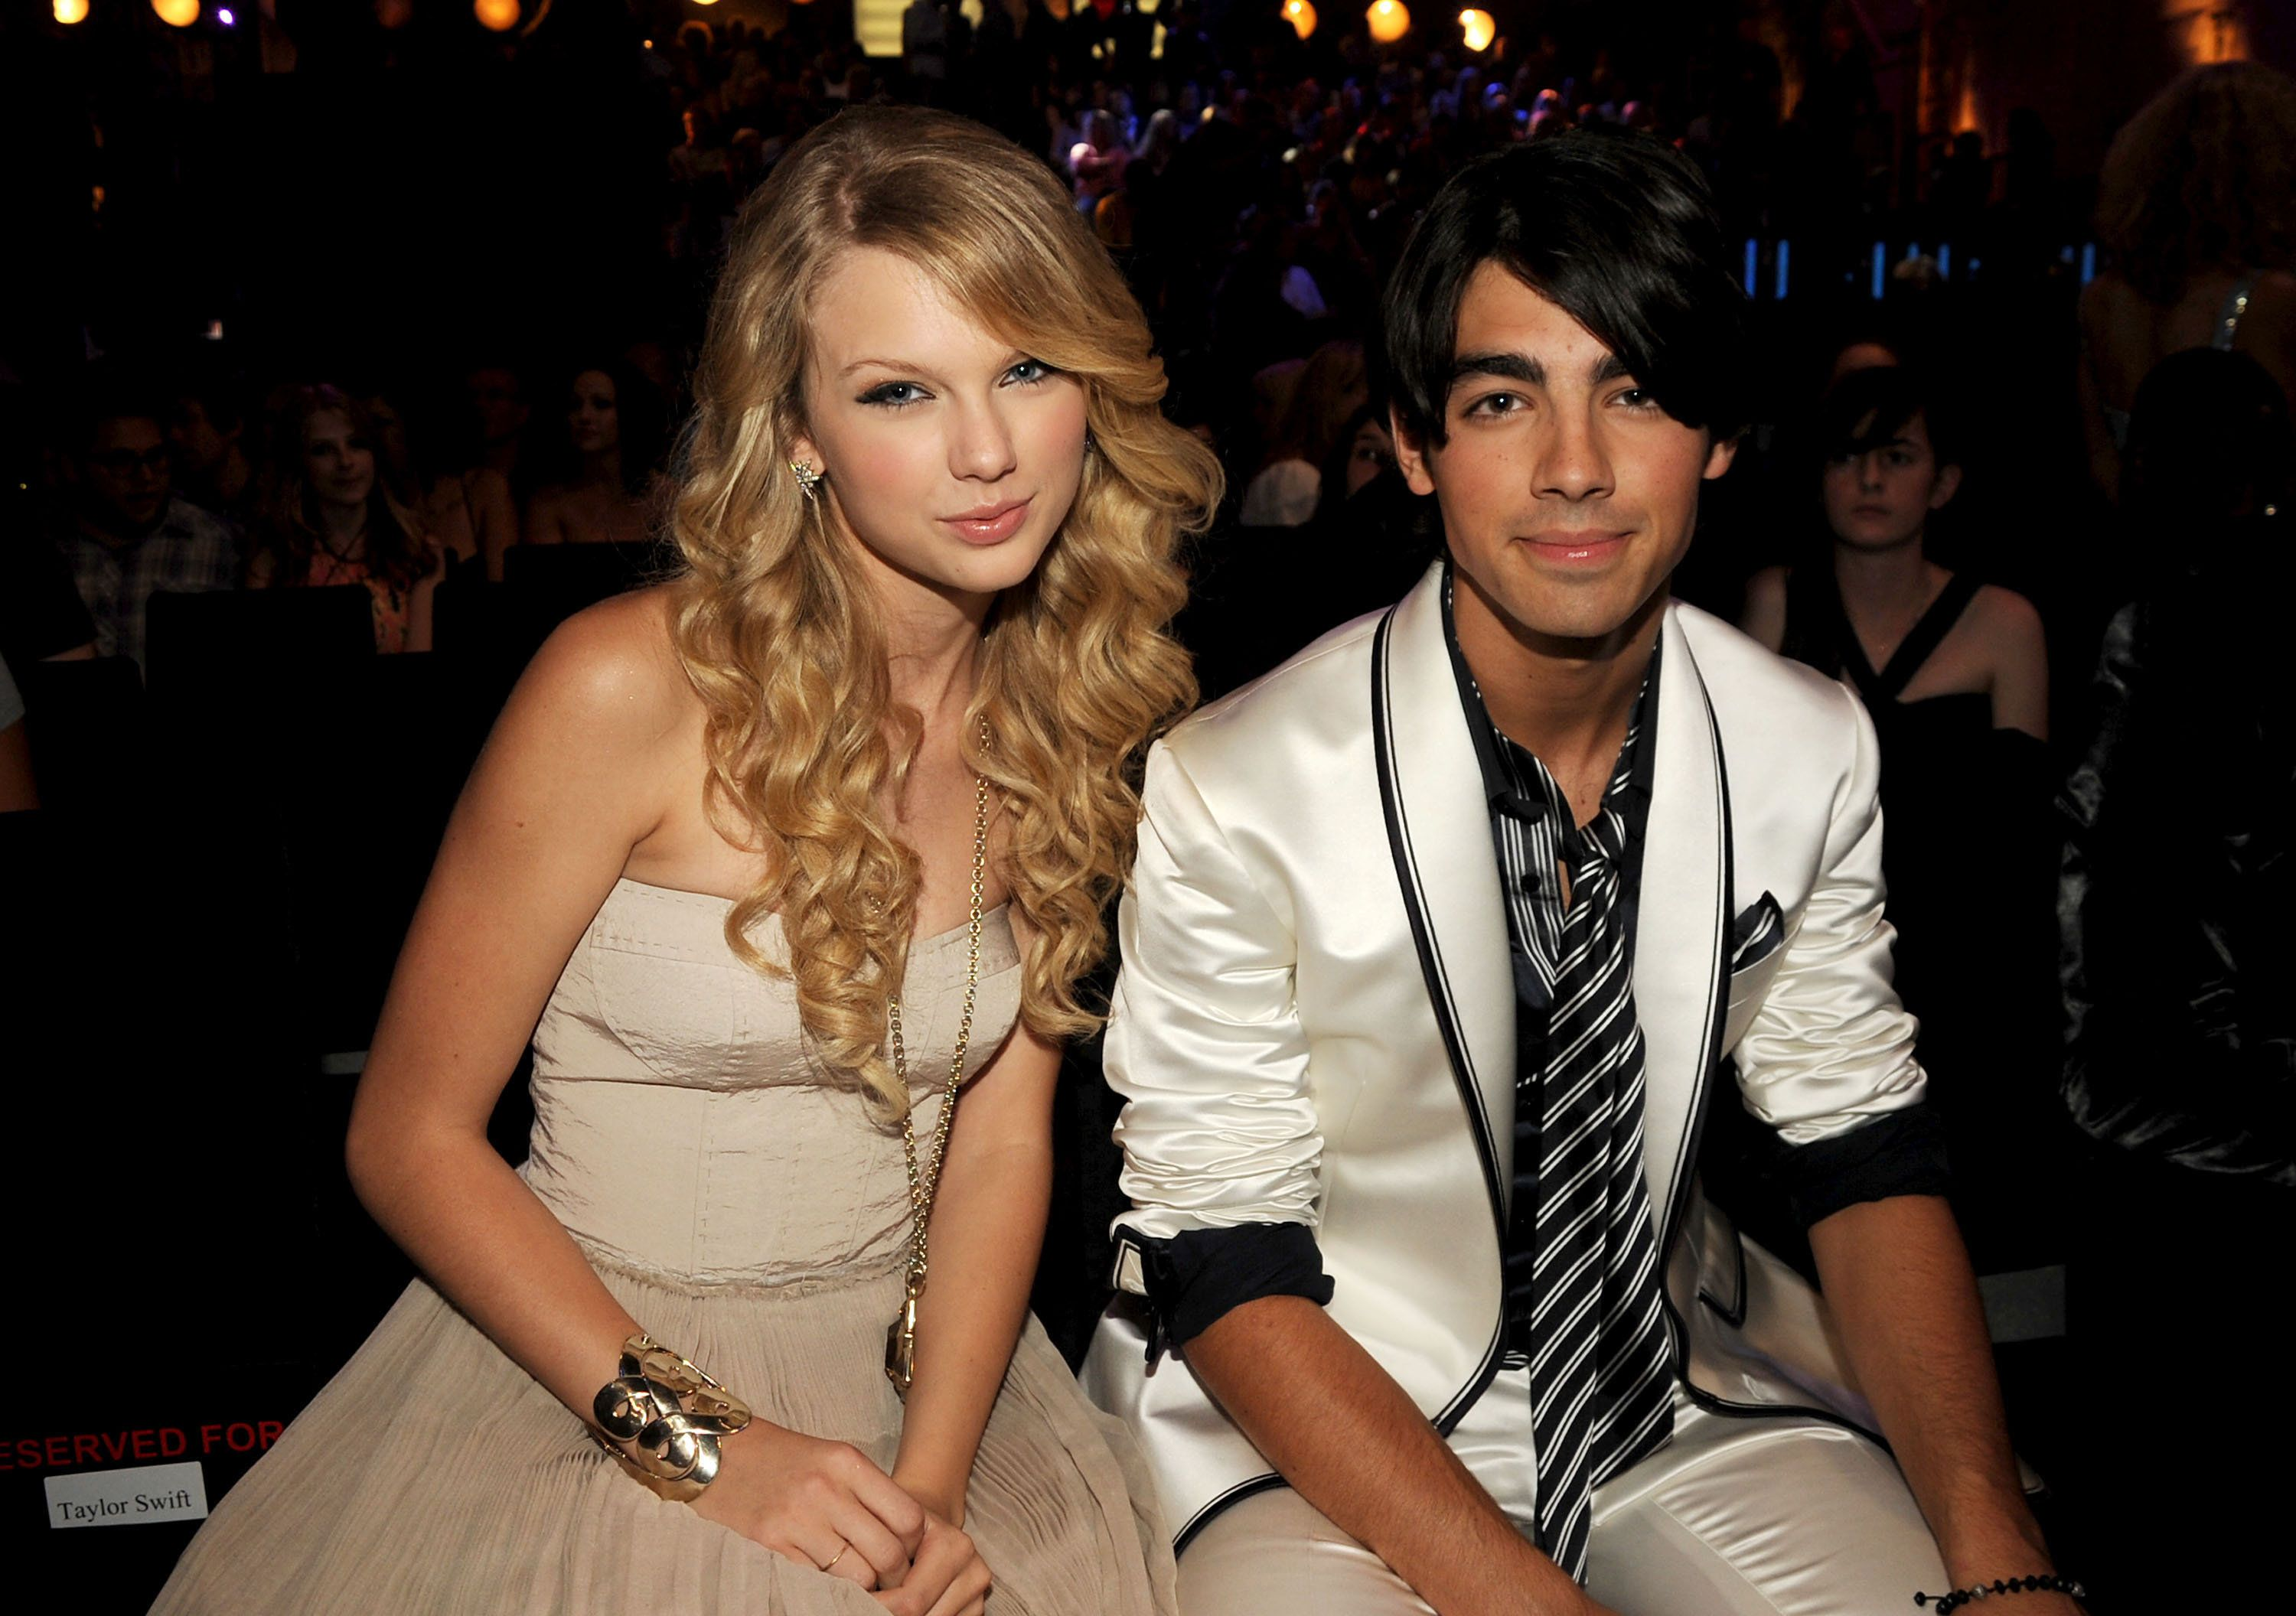 LOS ANGELES, CA - SEPTEMBER 07:  Singers Taylor Swift and Joe Jonas at the 2008 MTV Video Music Awards  at Paramount Pictures Studios on September 7, 2008 in Los Angeles, California.  (Photo by Jeff Kravitz/FilmMagic)